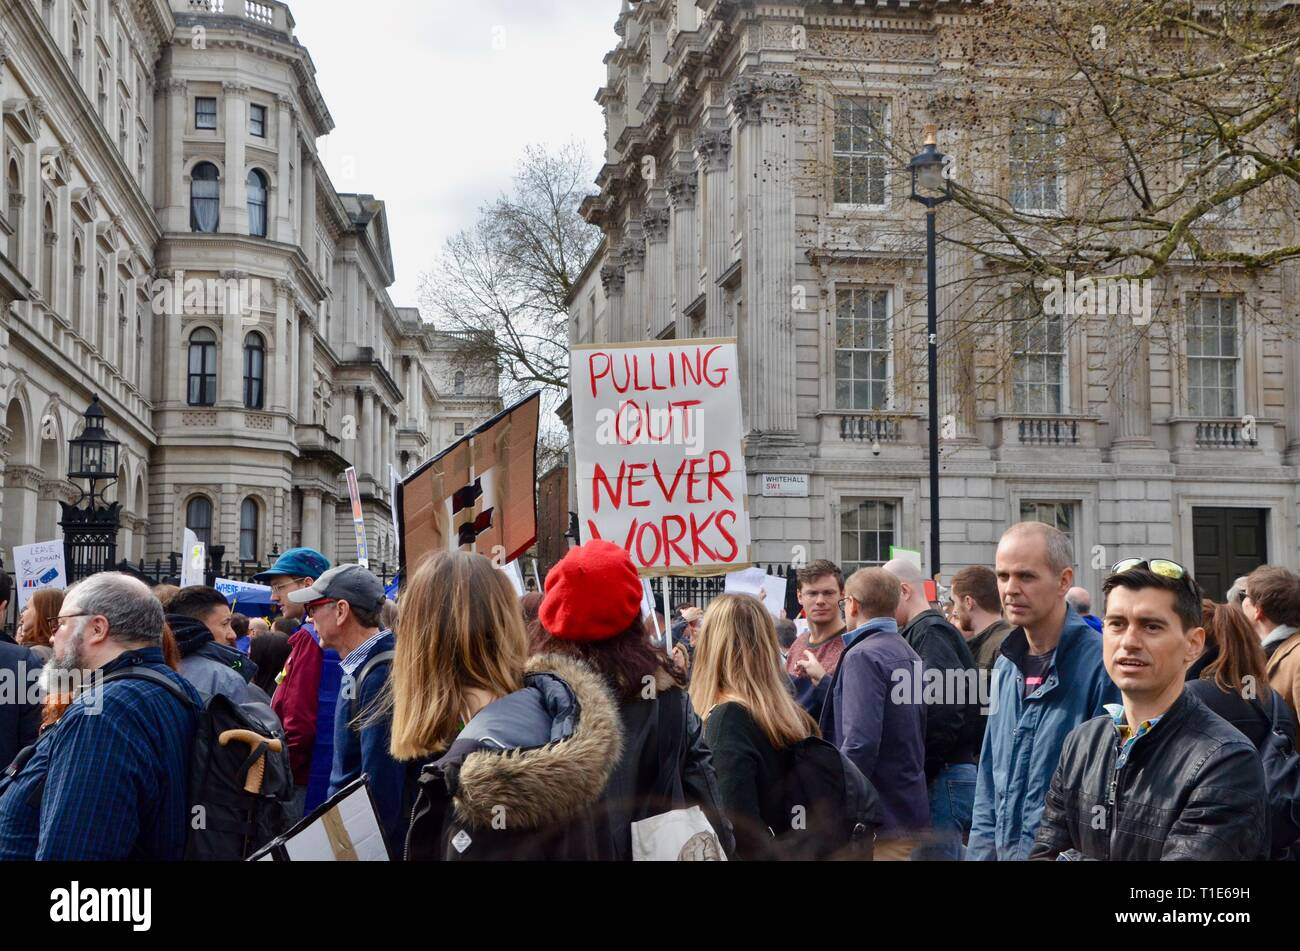 scenes from the anti brexit pro peoples vote march in london 23rd march 2019 pulling out never works placard - Stock Image